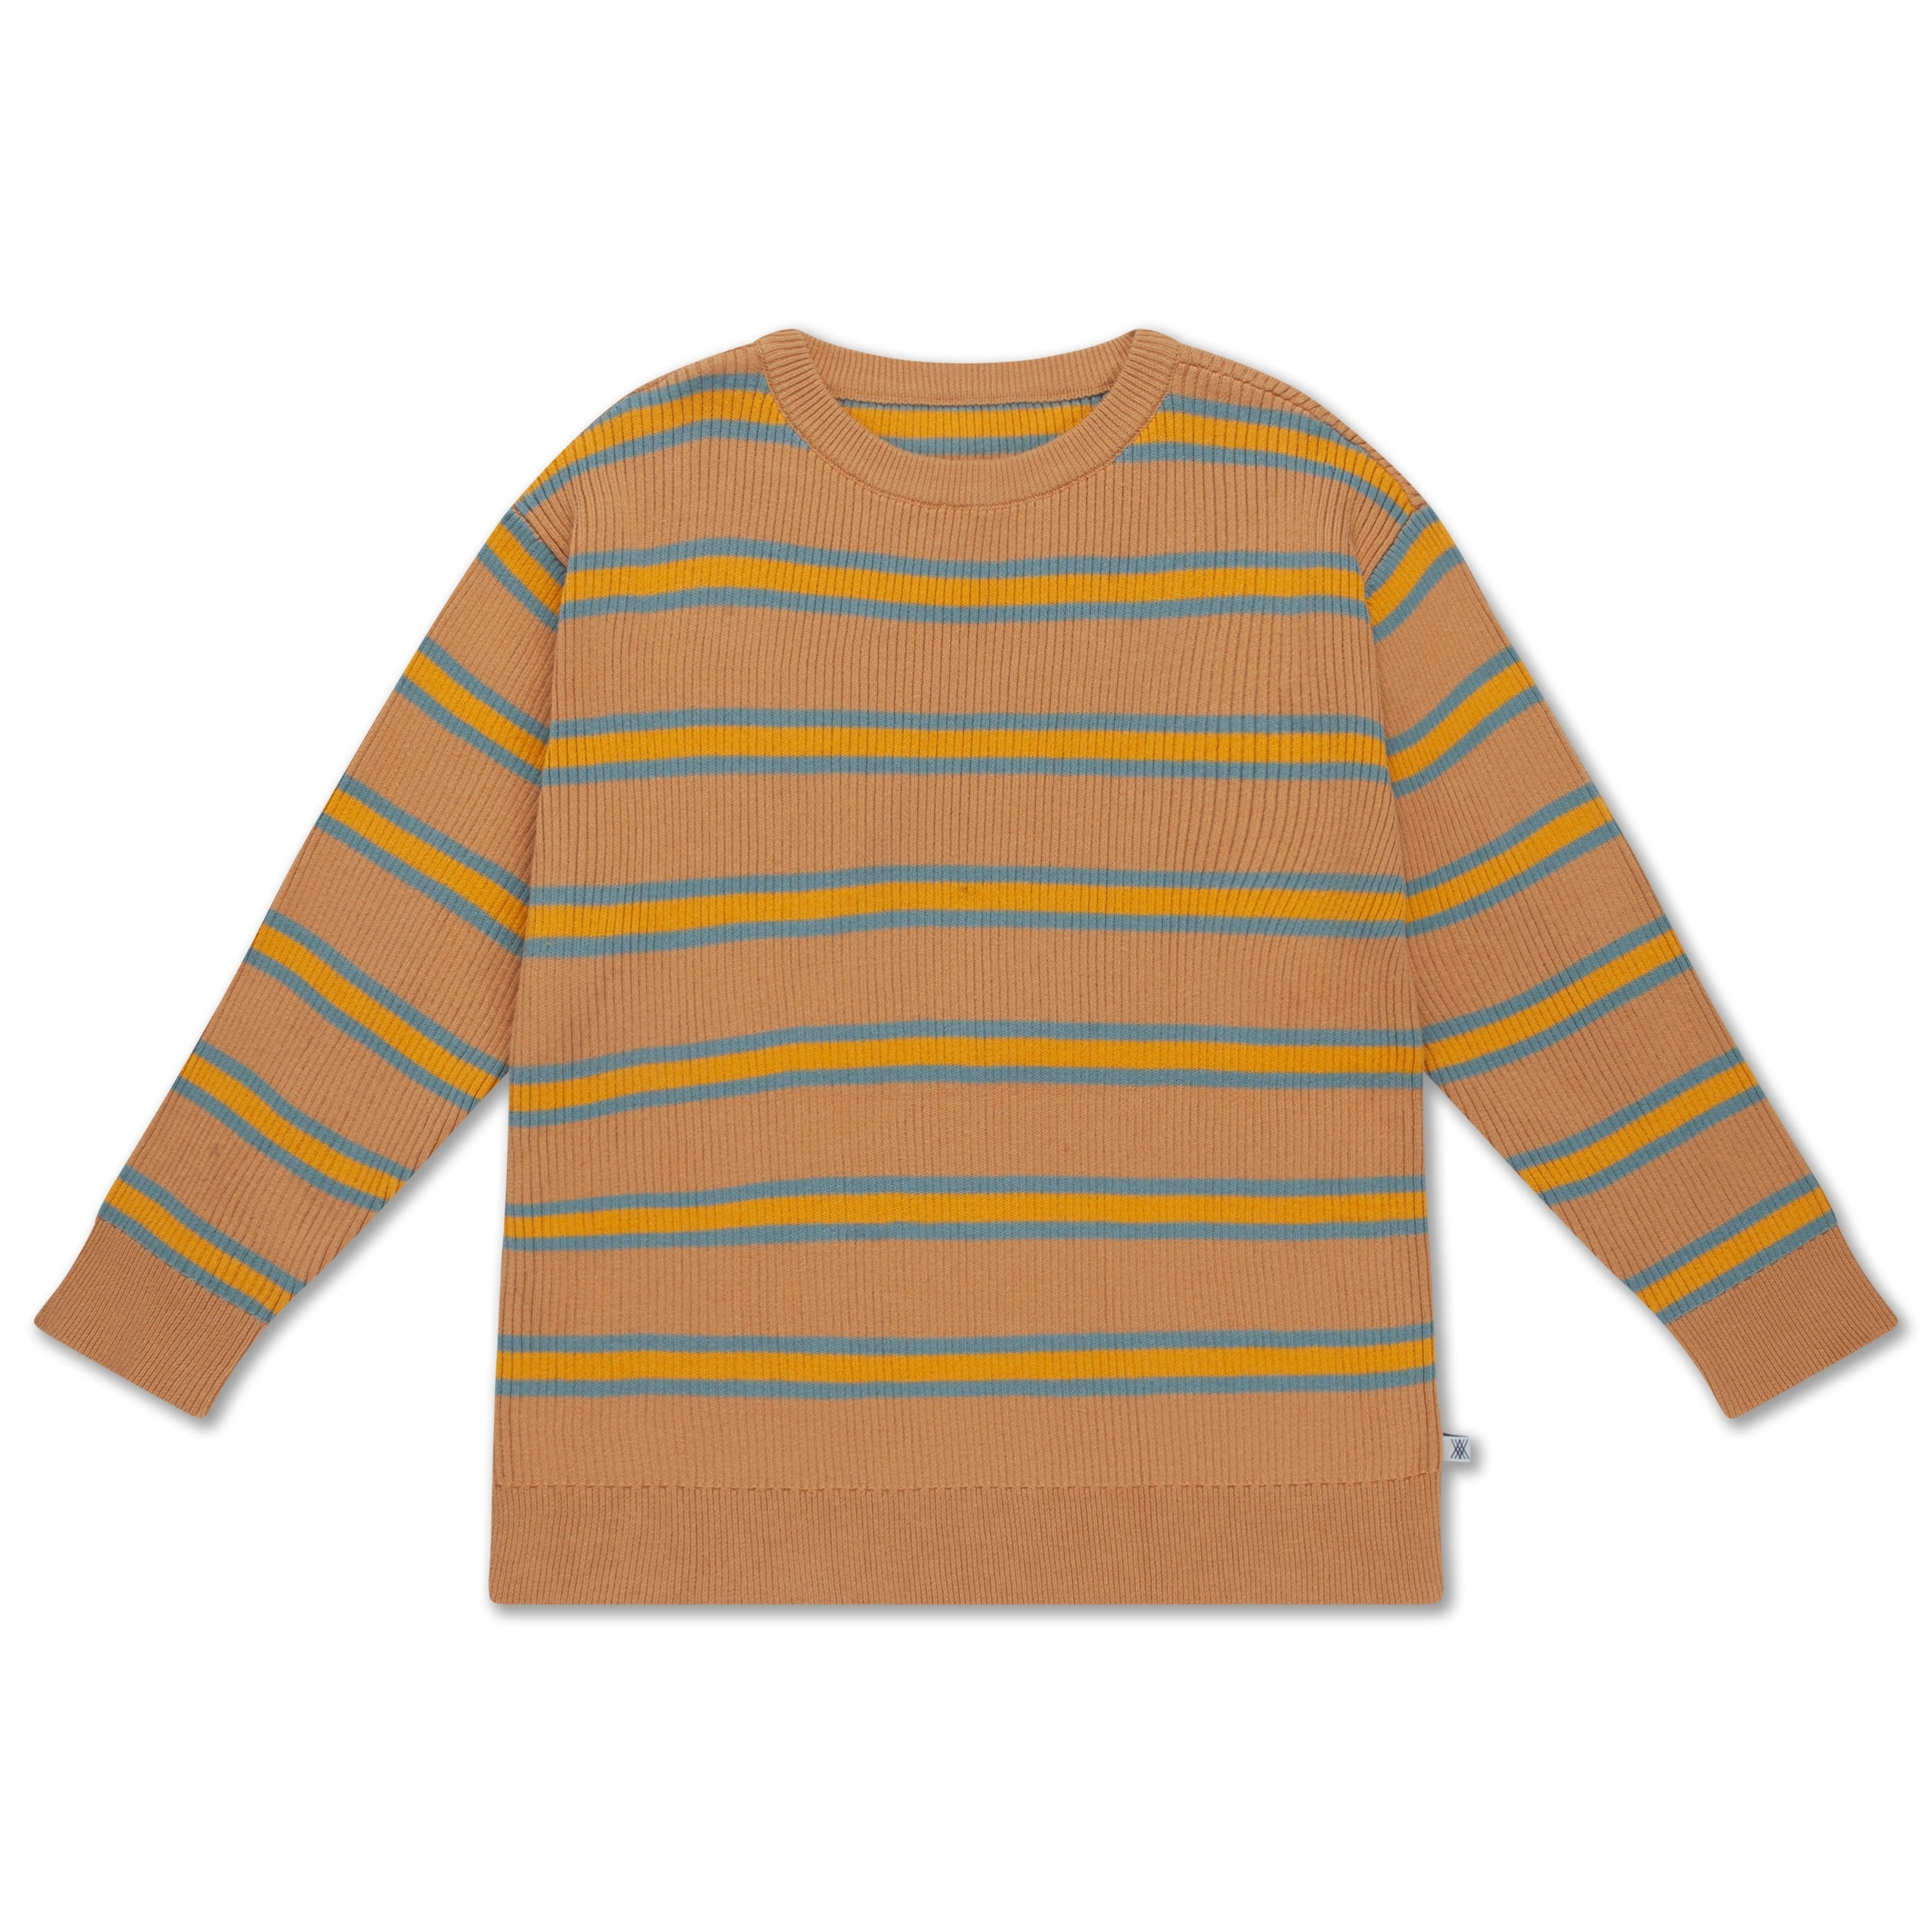 Knit sweater sandy blue stripe